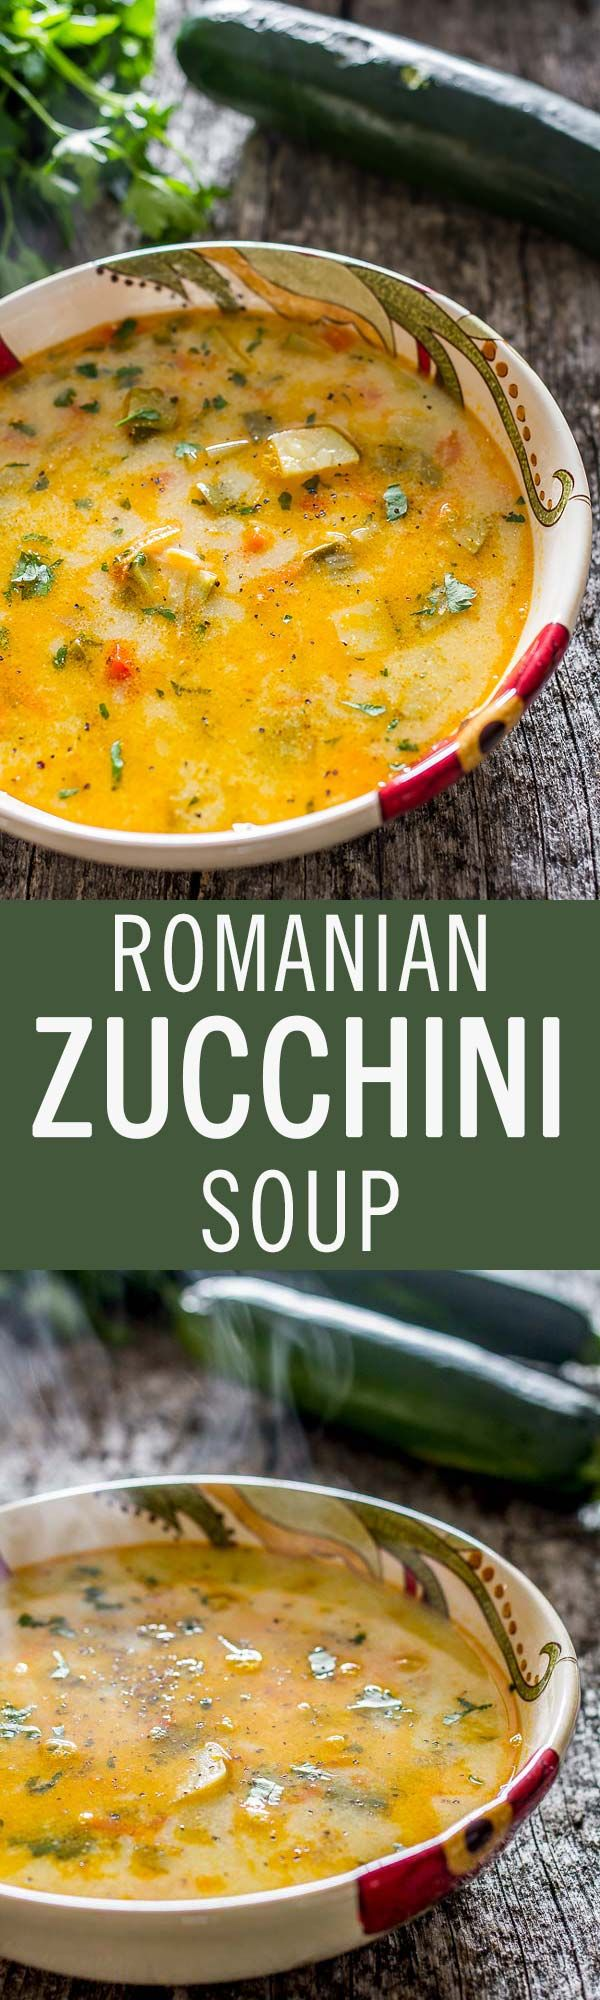 This delicious vegetable sour soup recipe of romanian origin this delicious vegetable sour soup recipe of romanian origin sporting zucchini as a star ingredient forumfinder Image collections